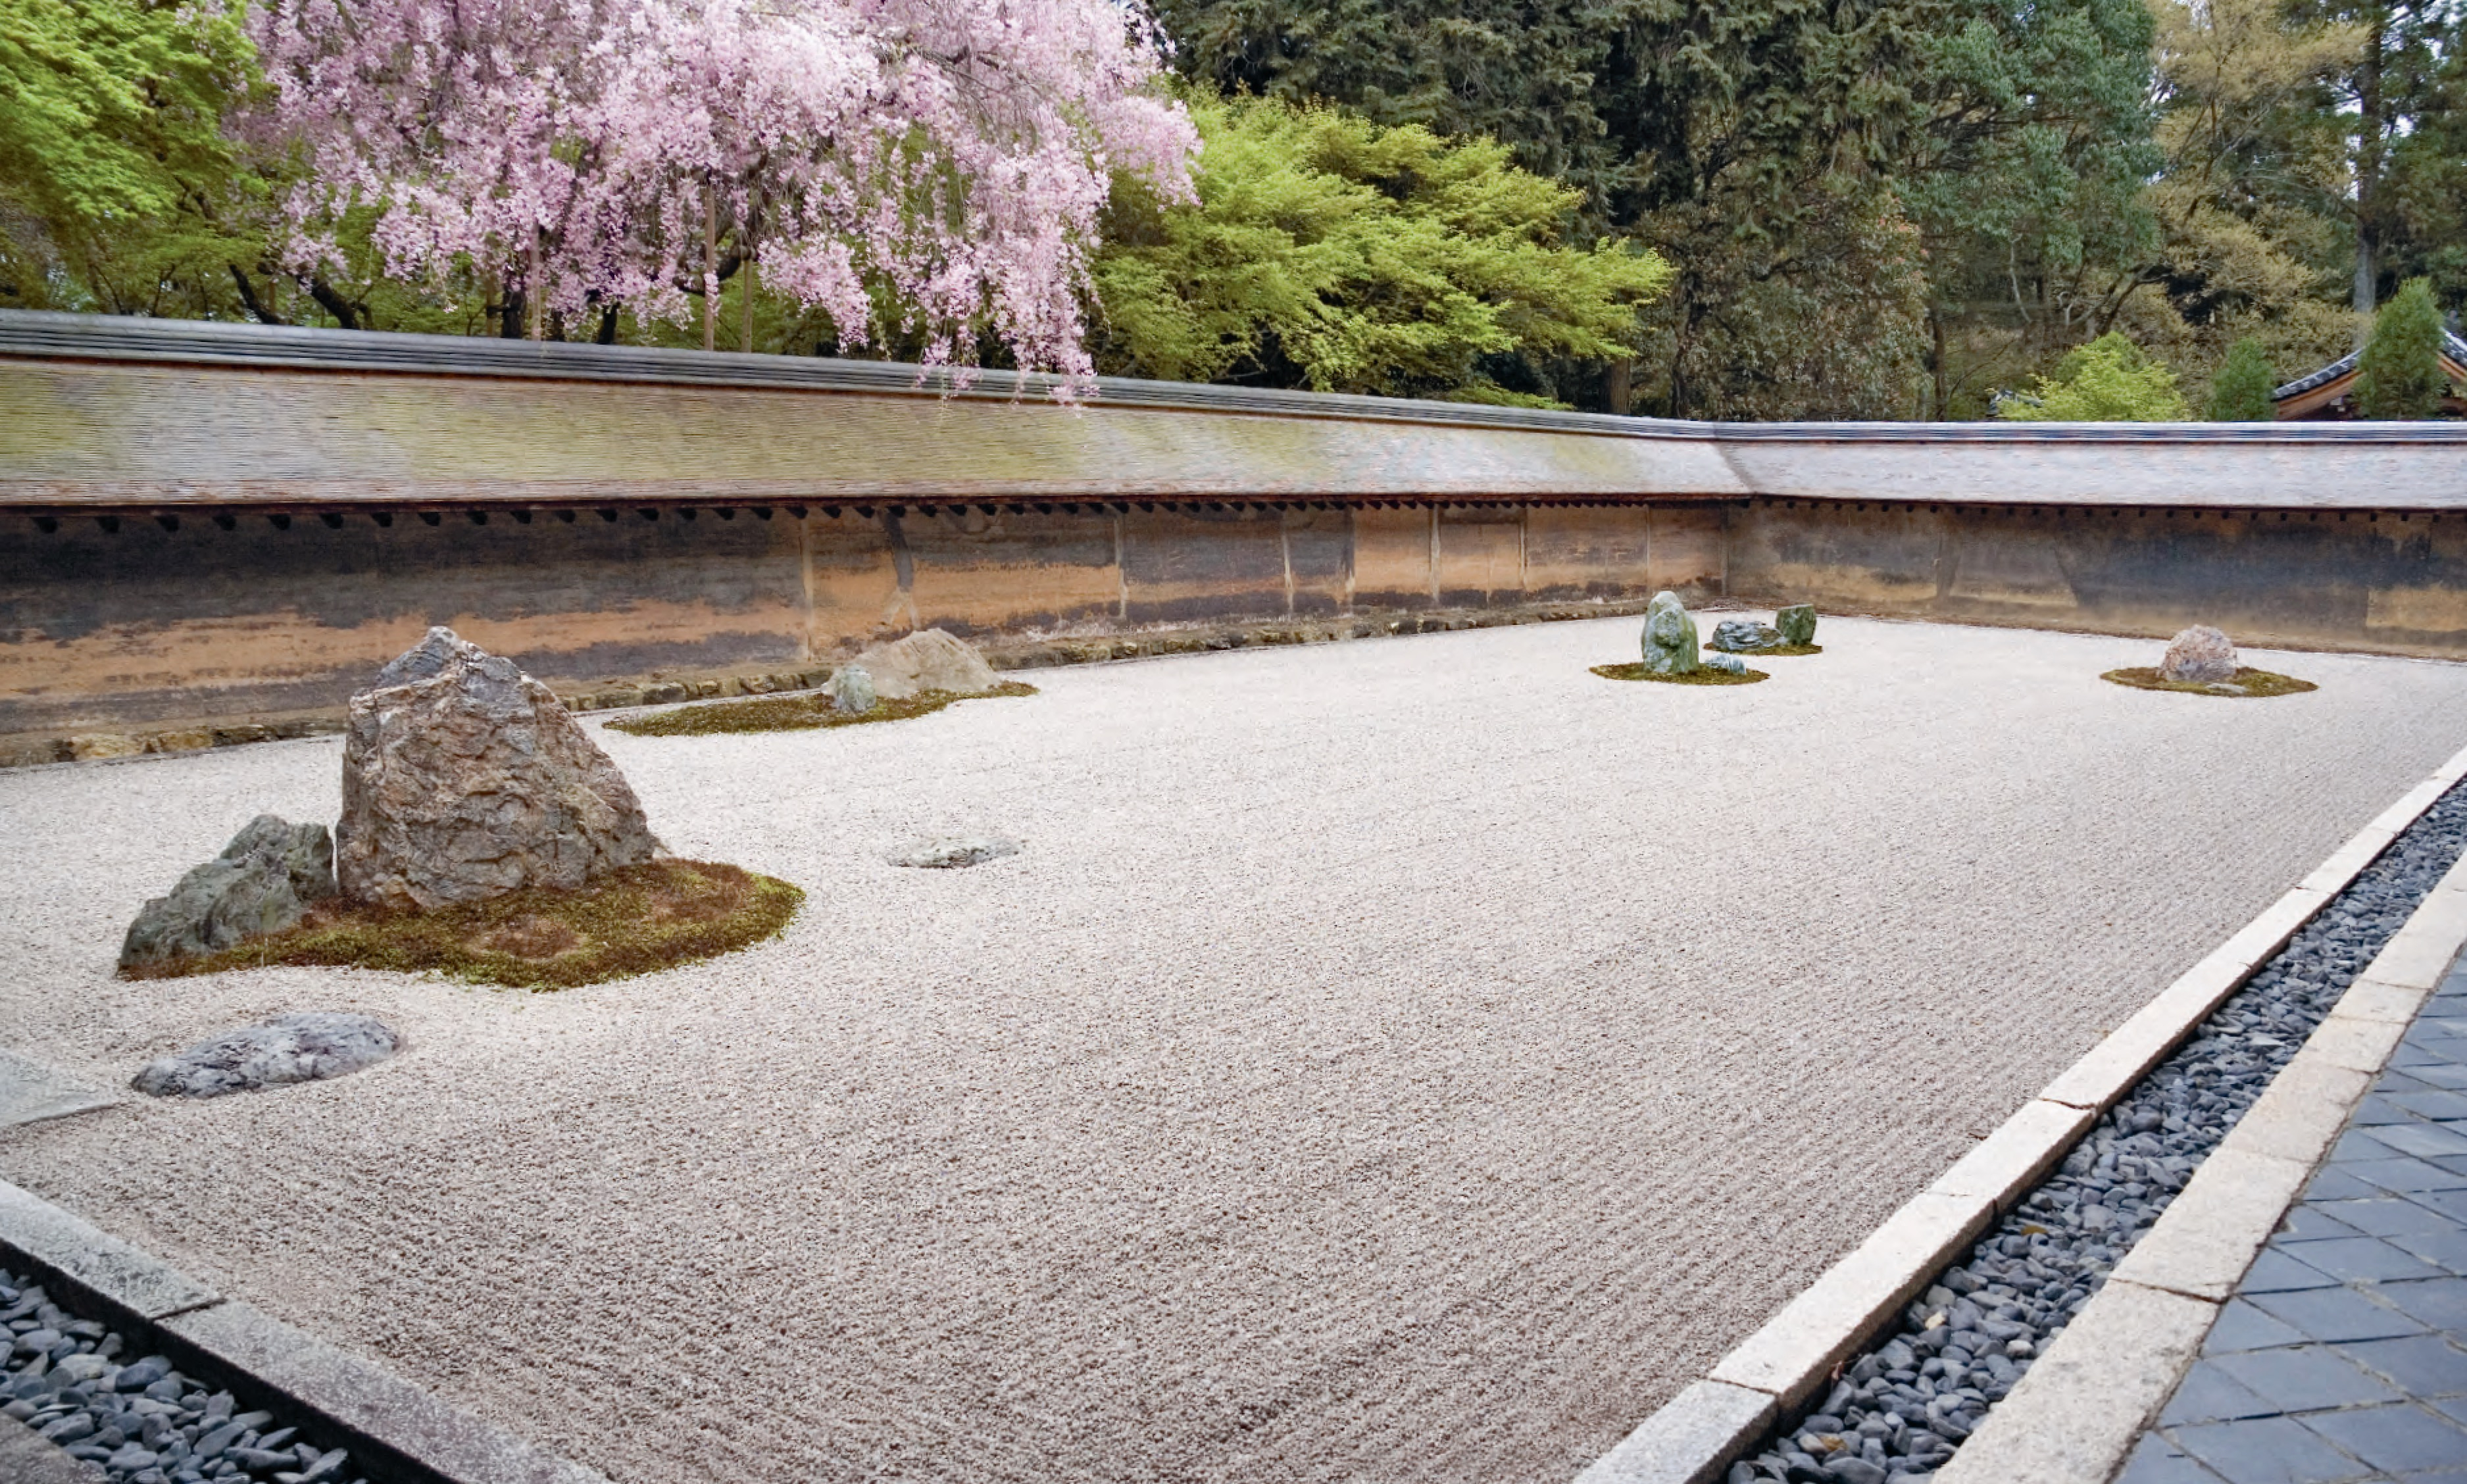 Ryoan-ji (Temple of the Dragon at Peace)